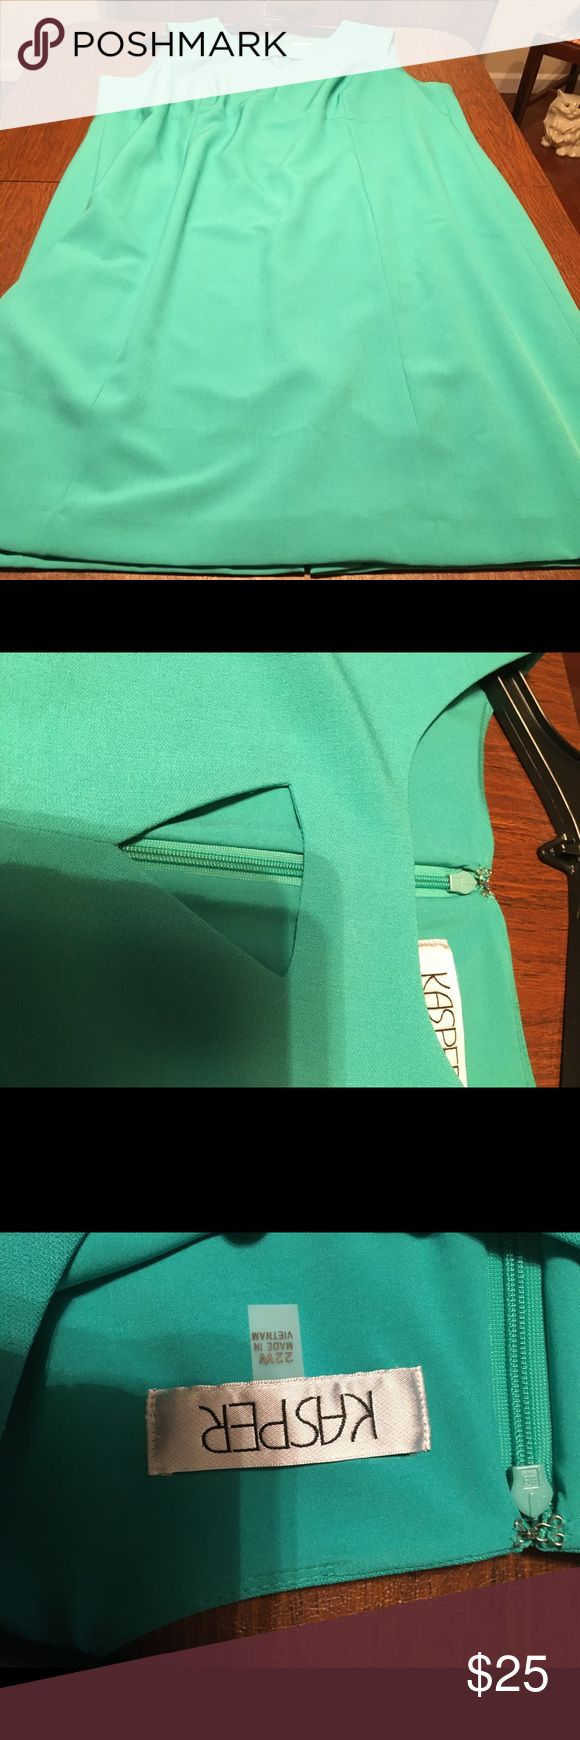 EUC Kasper Suit Separates Dress Lucky teal suit separates from Kasper. Worn once to a job interview, and I got the job. 😉 Great cut-out collar. Size 22W. Excellent used condition. Kasper Dresses Midi